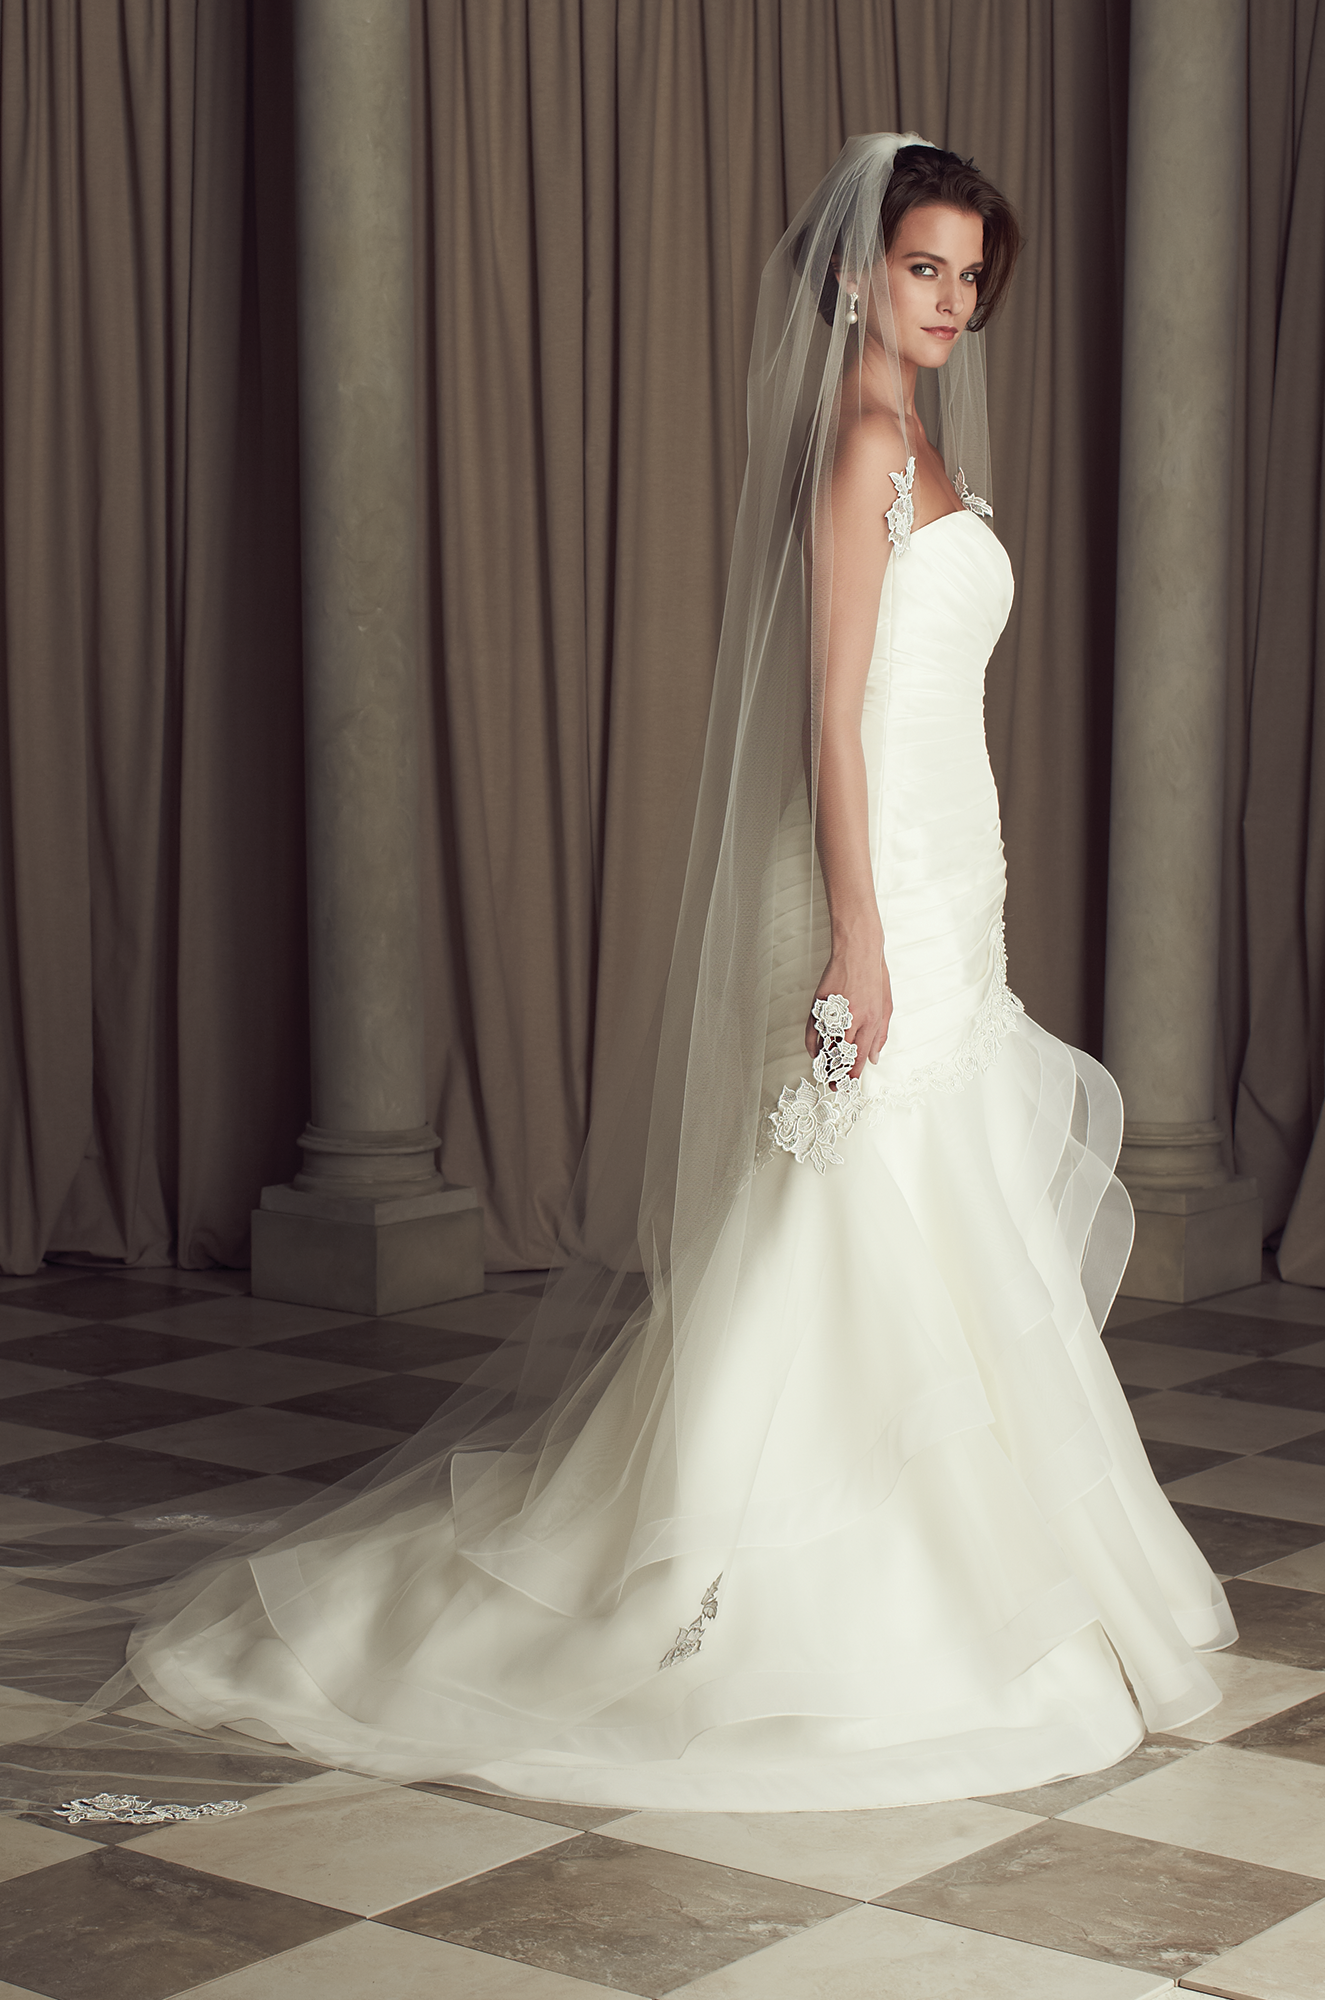 One tier fingertip or chapel length veil with scattered guipure